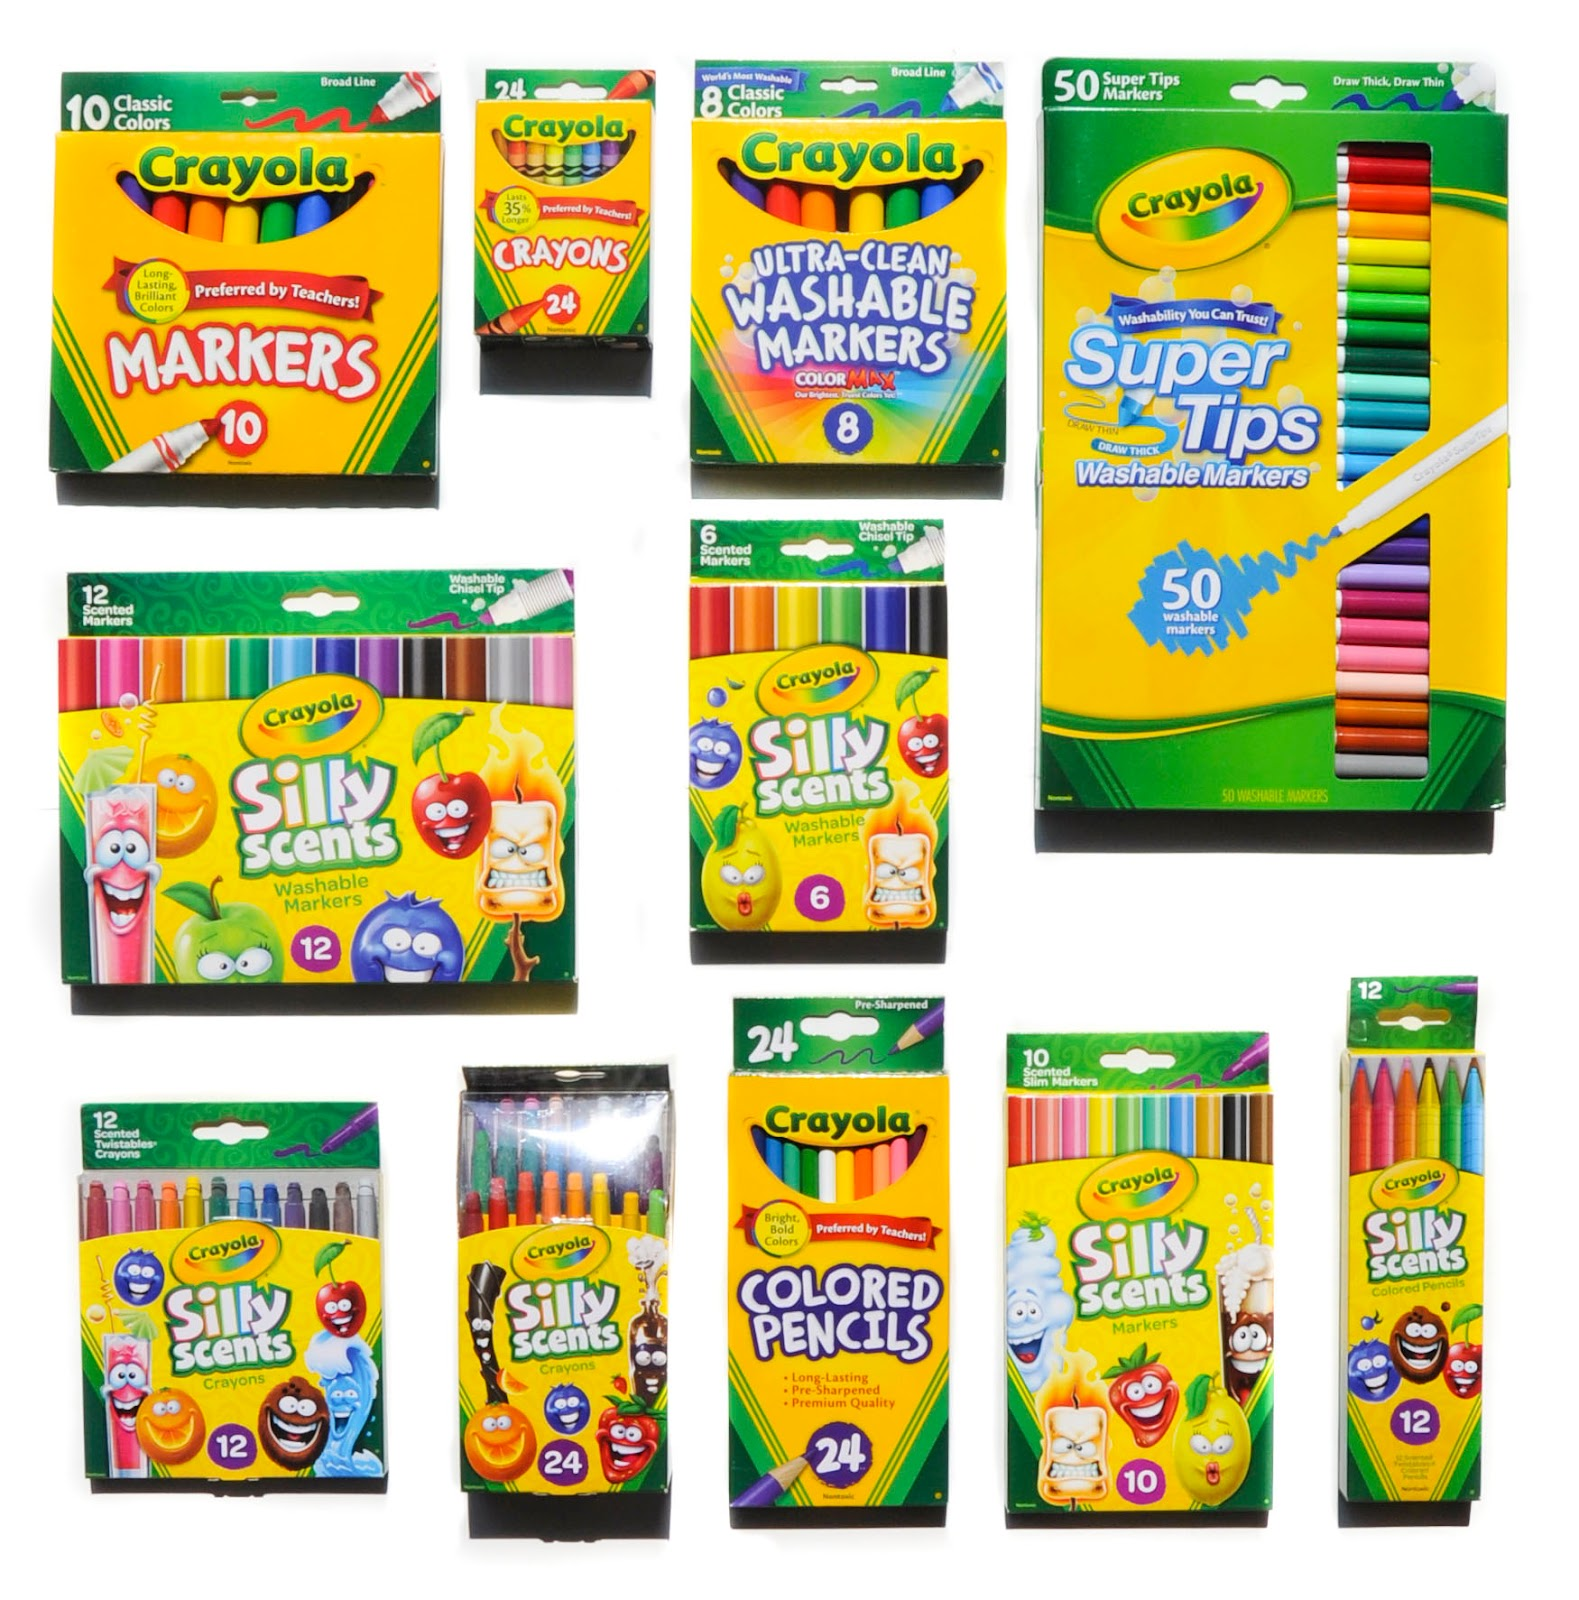 25 ways to use crayola supplies and silly scents in the classroom